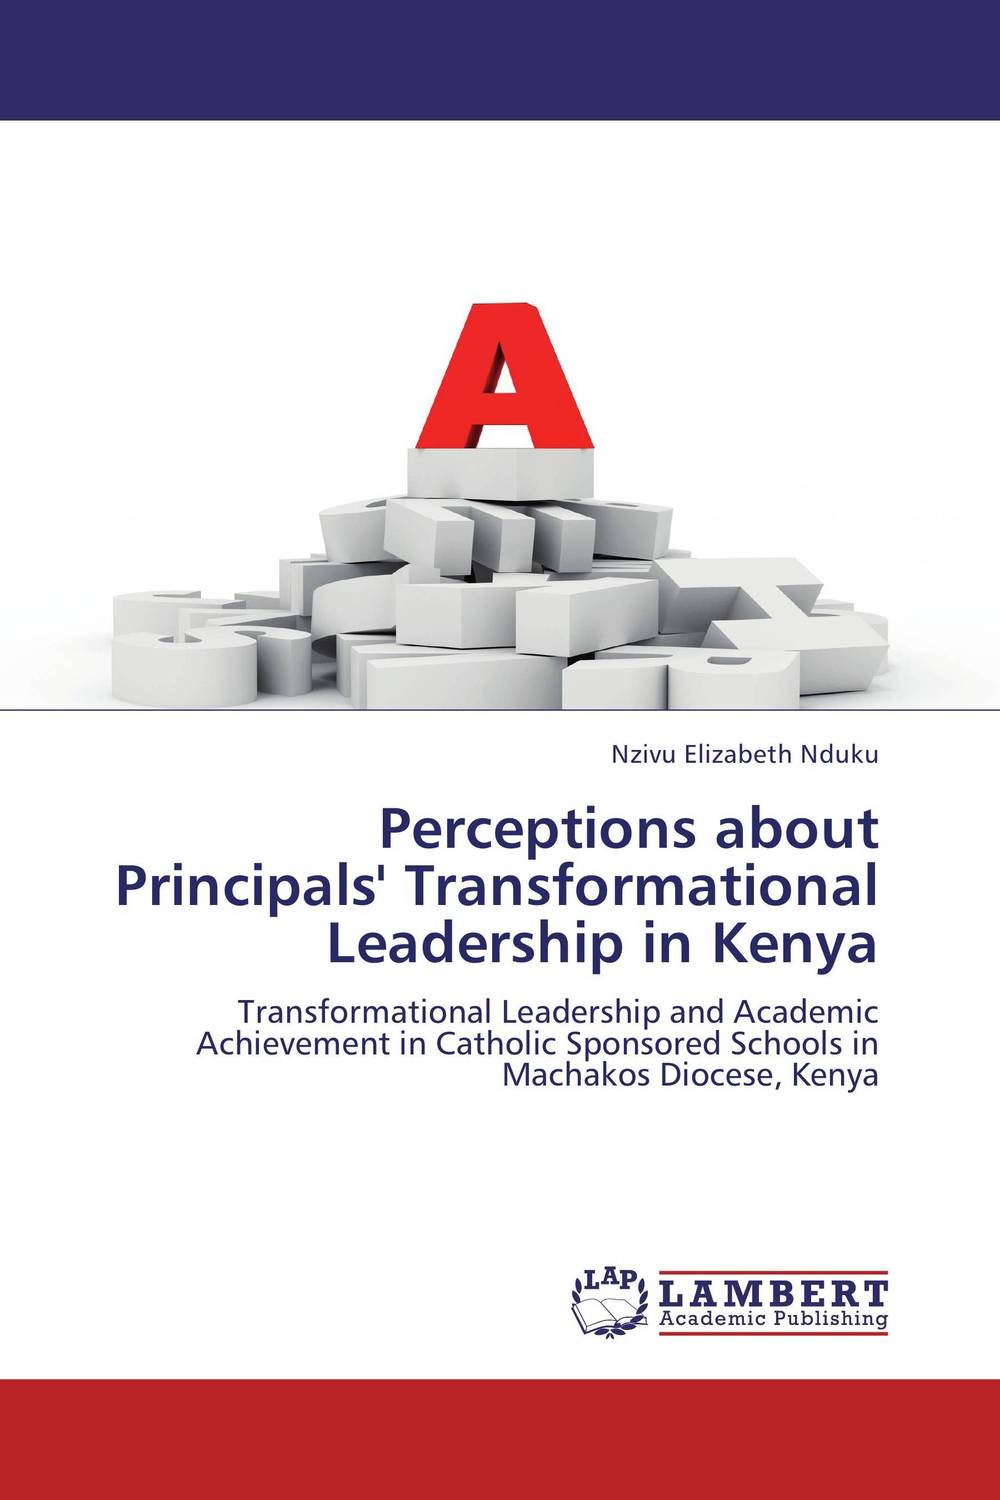 Perceptions about Principals' Transformational Leadership in Kenya role of school leadership in promoting moral integrity among students